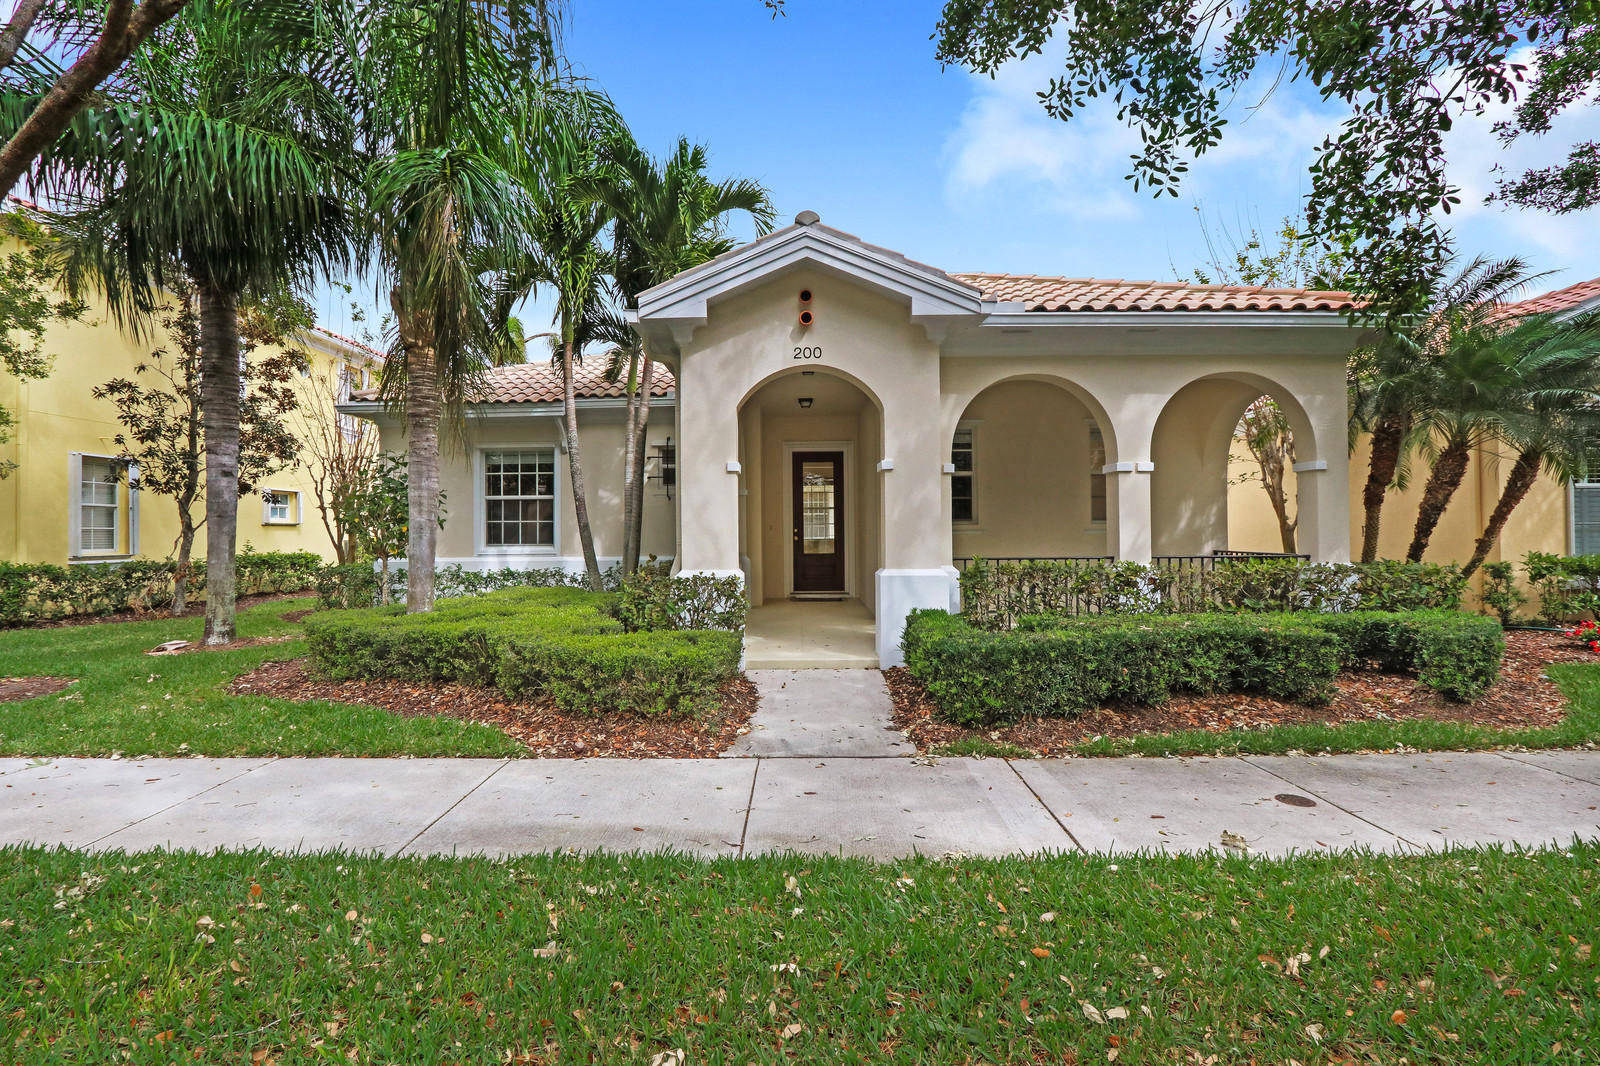 200 Florence Drive, Jupiter, Florida 33458, 3 Bedrooms Bedrooms, ,2.1 BathroomsBathrooms,A,Single family,Florence,RX-10697402